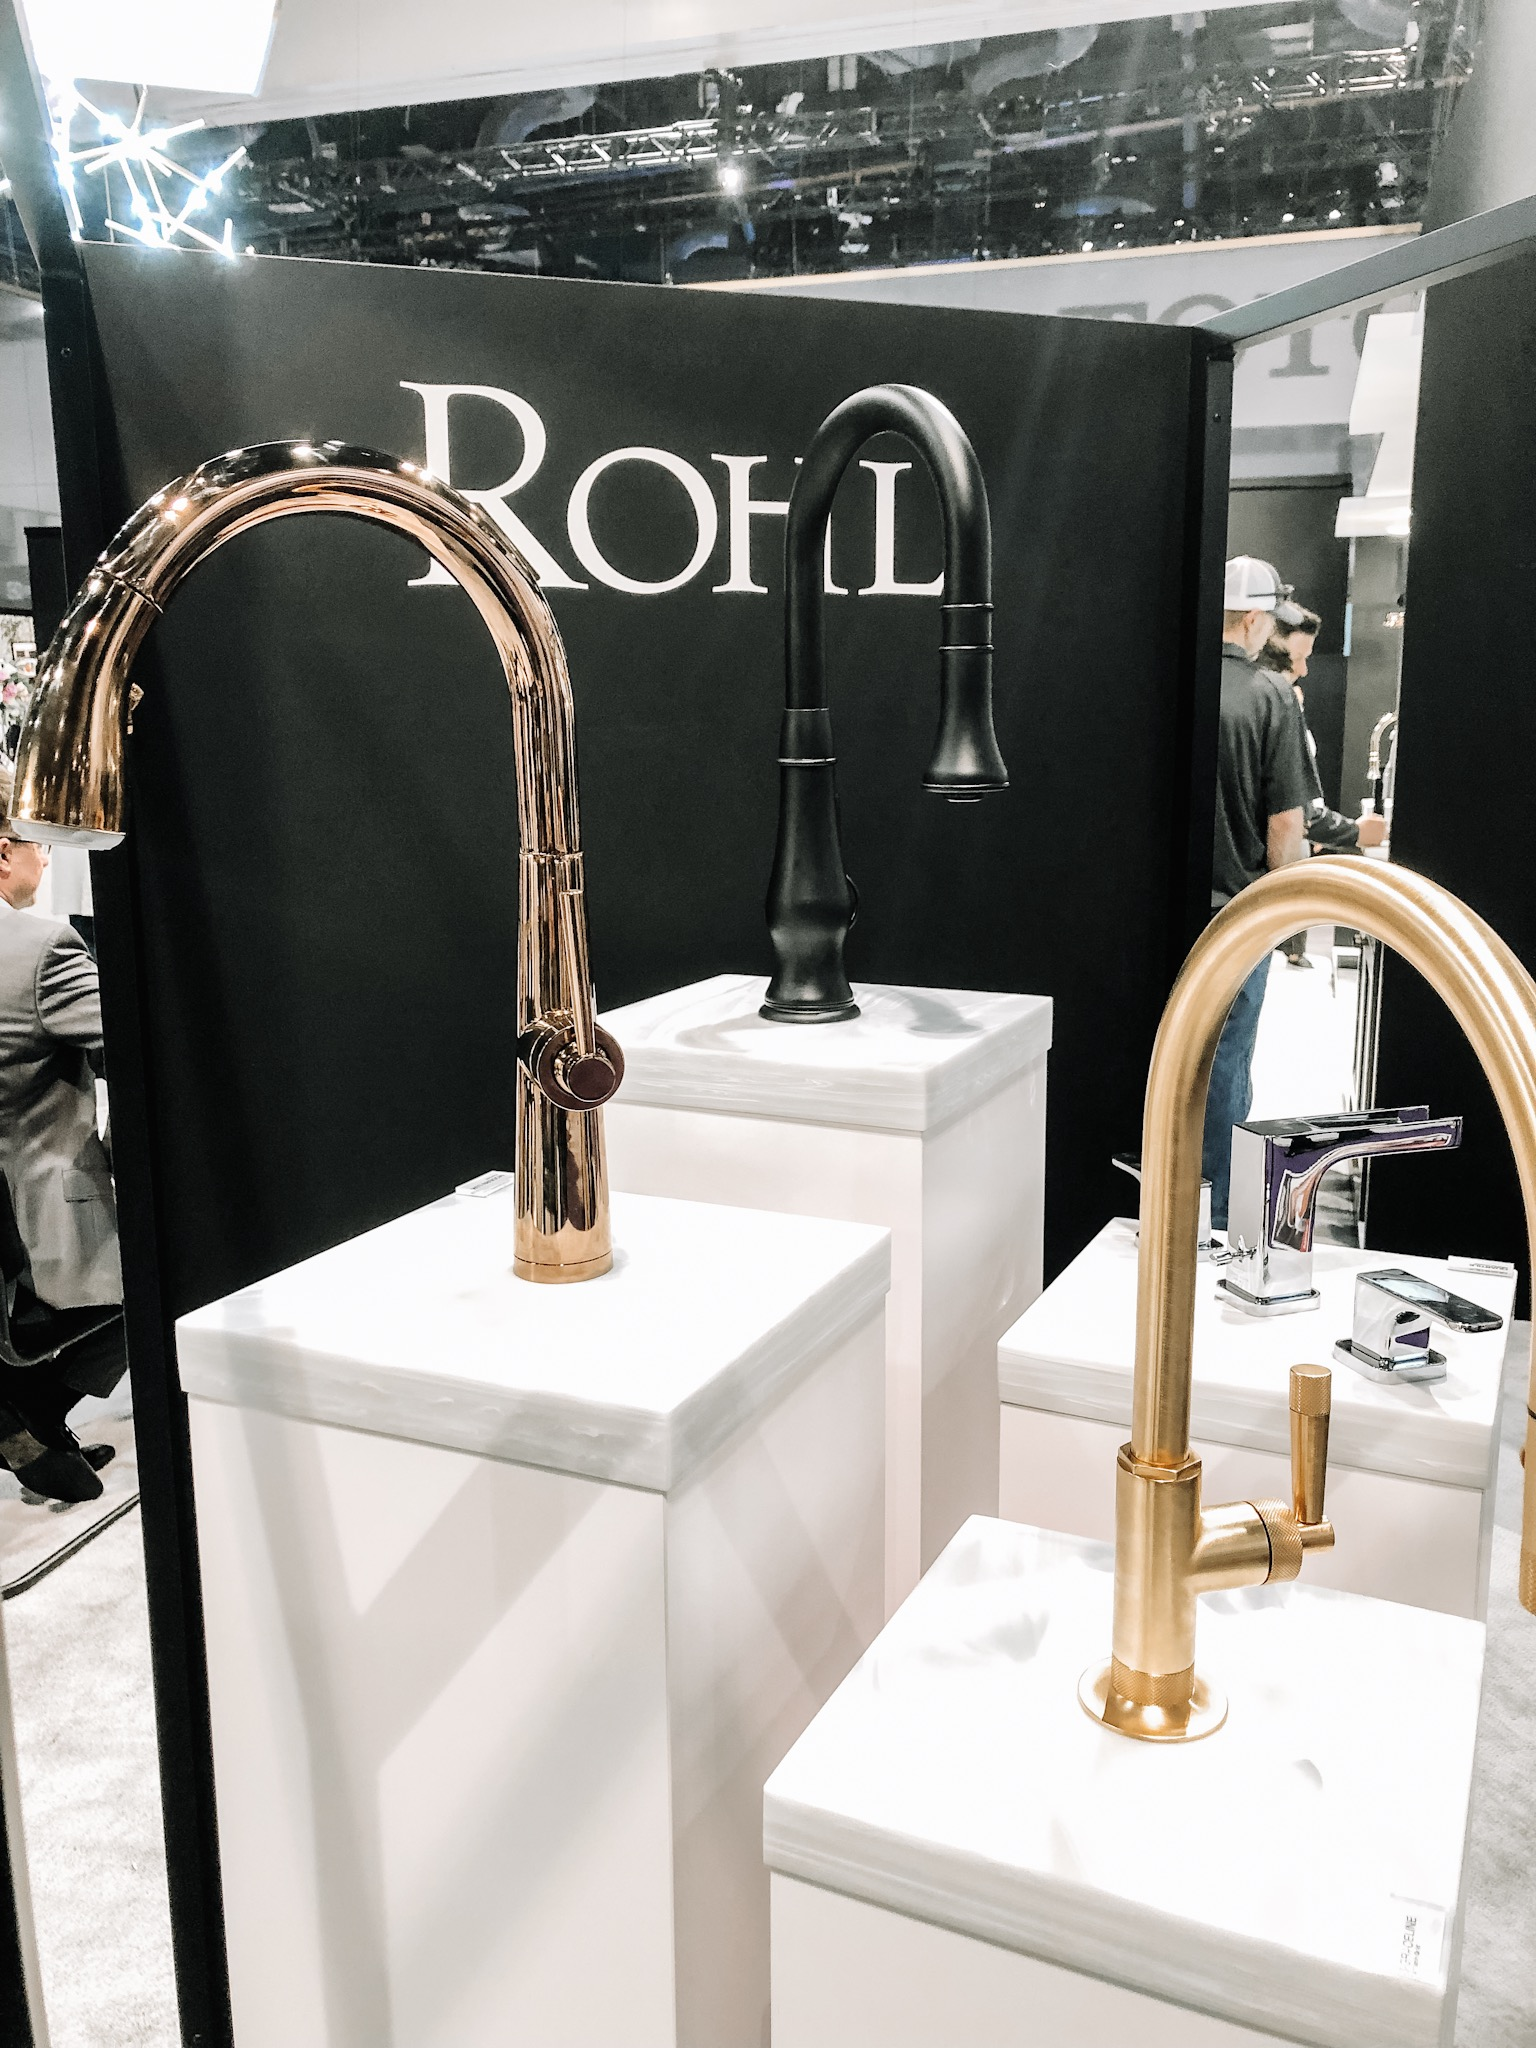 The Top 5 Kitchen and Bath Trends for 2019 and How To Get Them On a Budget - Rose Gold and Copper Faucets